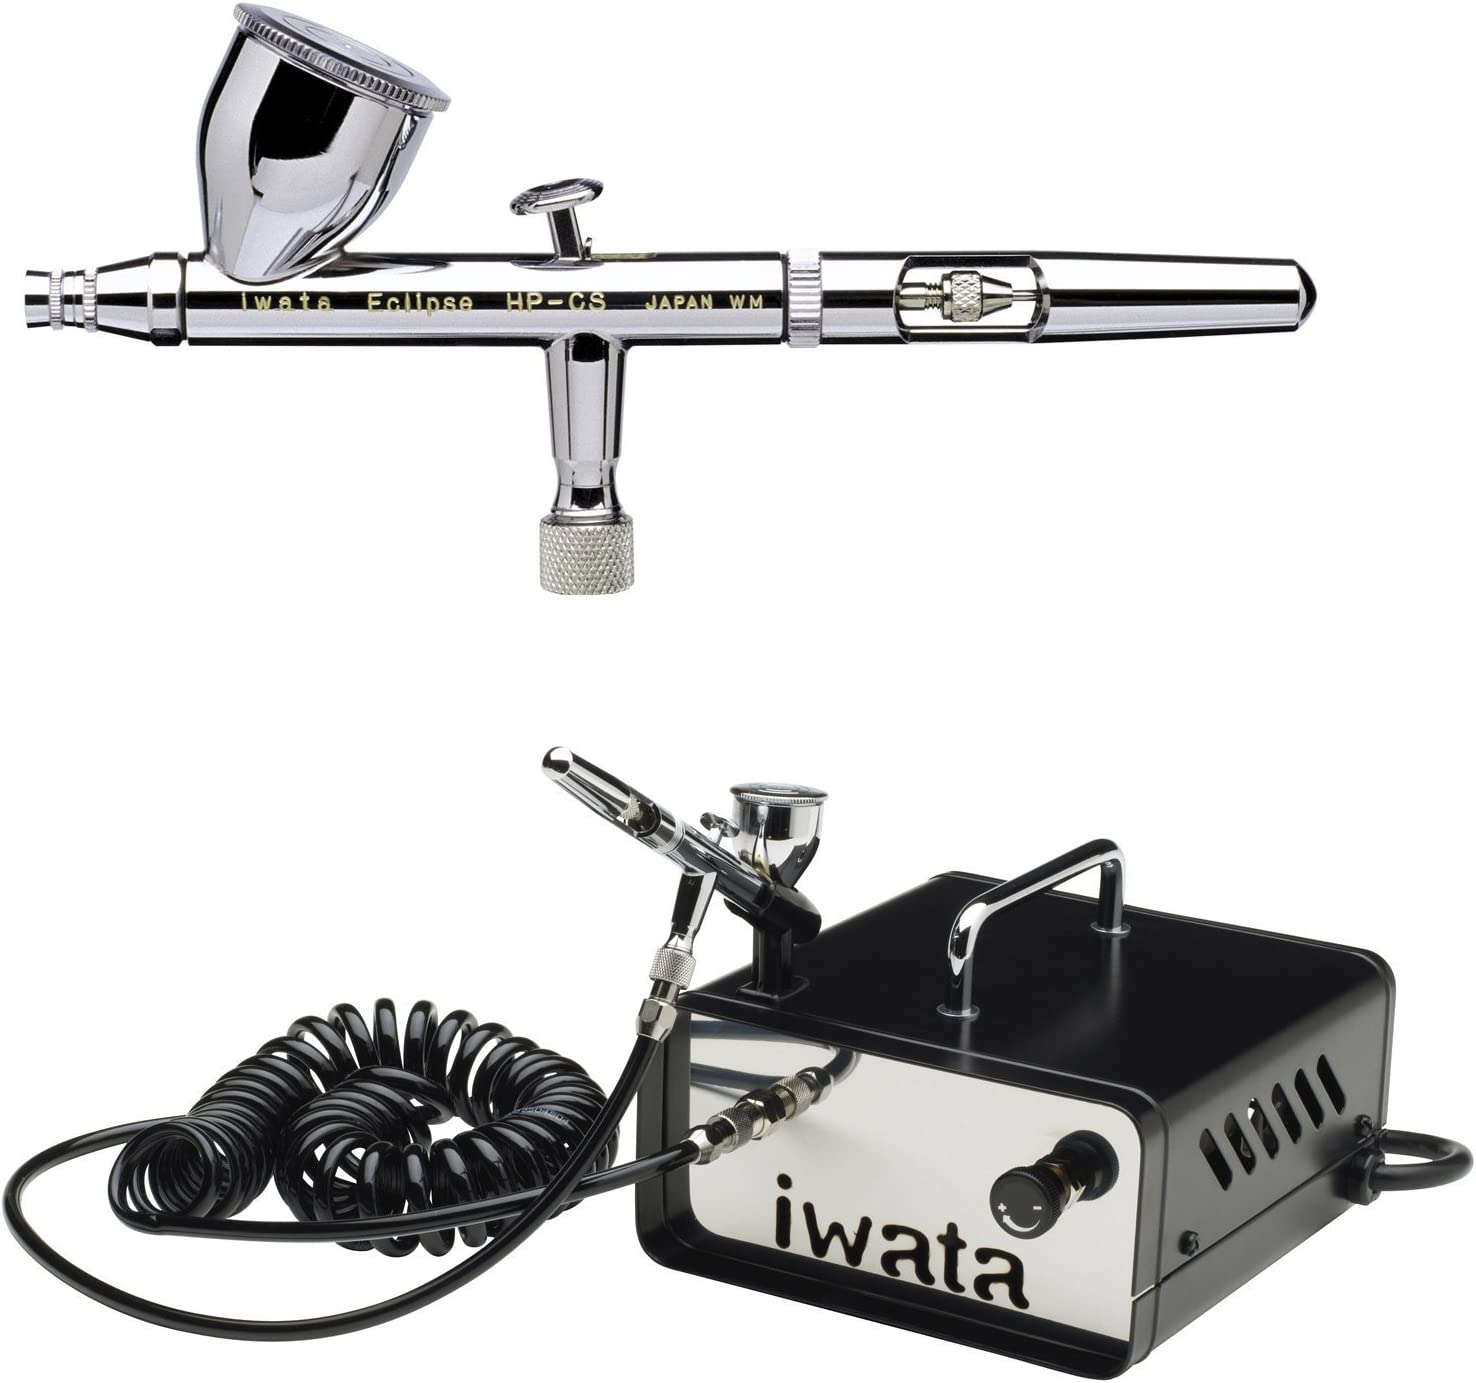 ECL 4500 Iwata Eclipse HP-CS Large Gravity Feed .35mm Airbrush with IS-35 Ninja Jet Studio Series Compressor